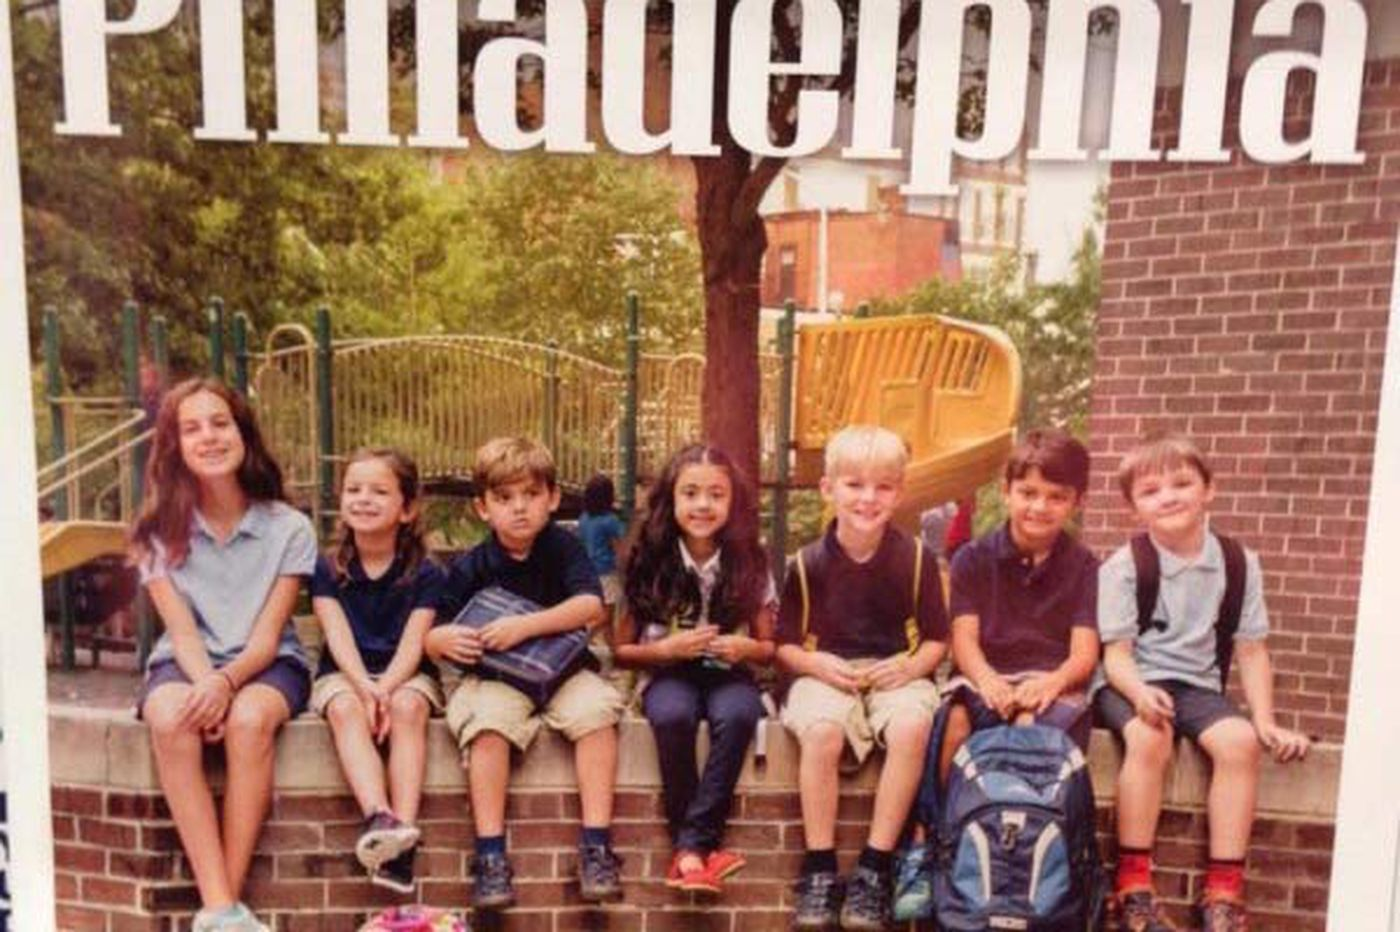 Philly Magazine editor apologizes for 'stupid' cover